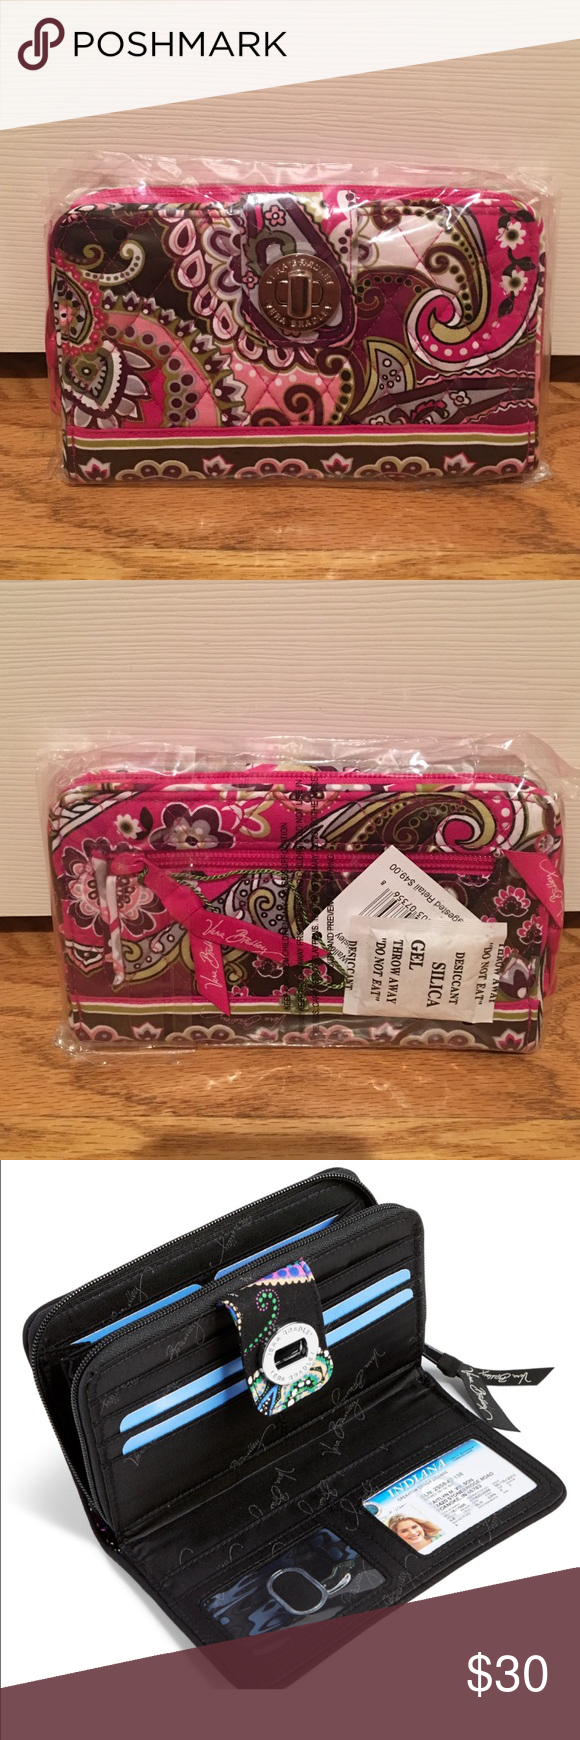 Vera Bradley Turn and Lock Wallet Turn and lock wallet in Very Berry Paisley pattern. Completely untouched in packaging still with price tag! Third picture shows the inside pockets and slots available. Vera Bradley Bags Wallets